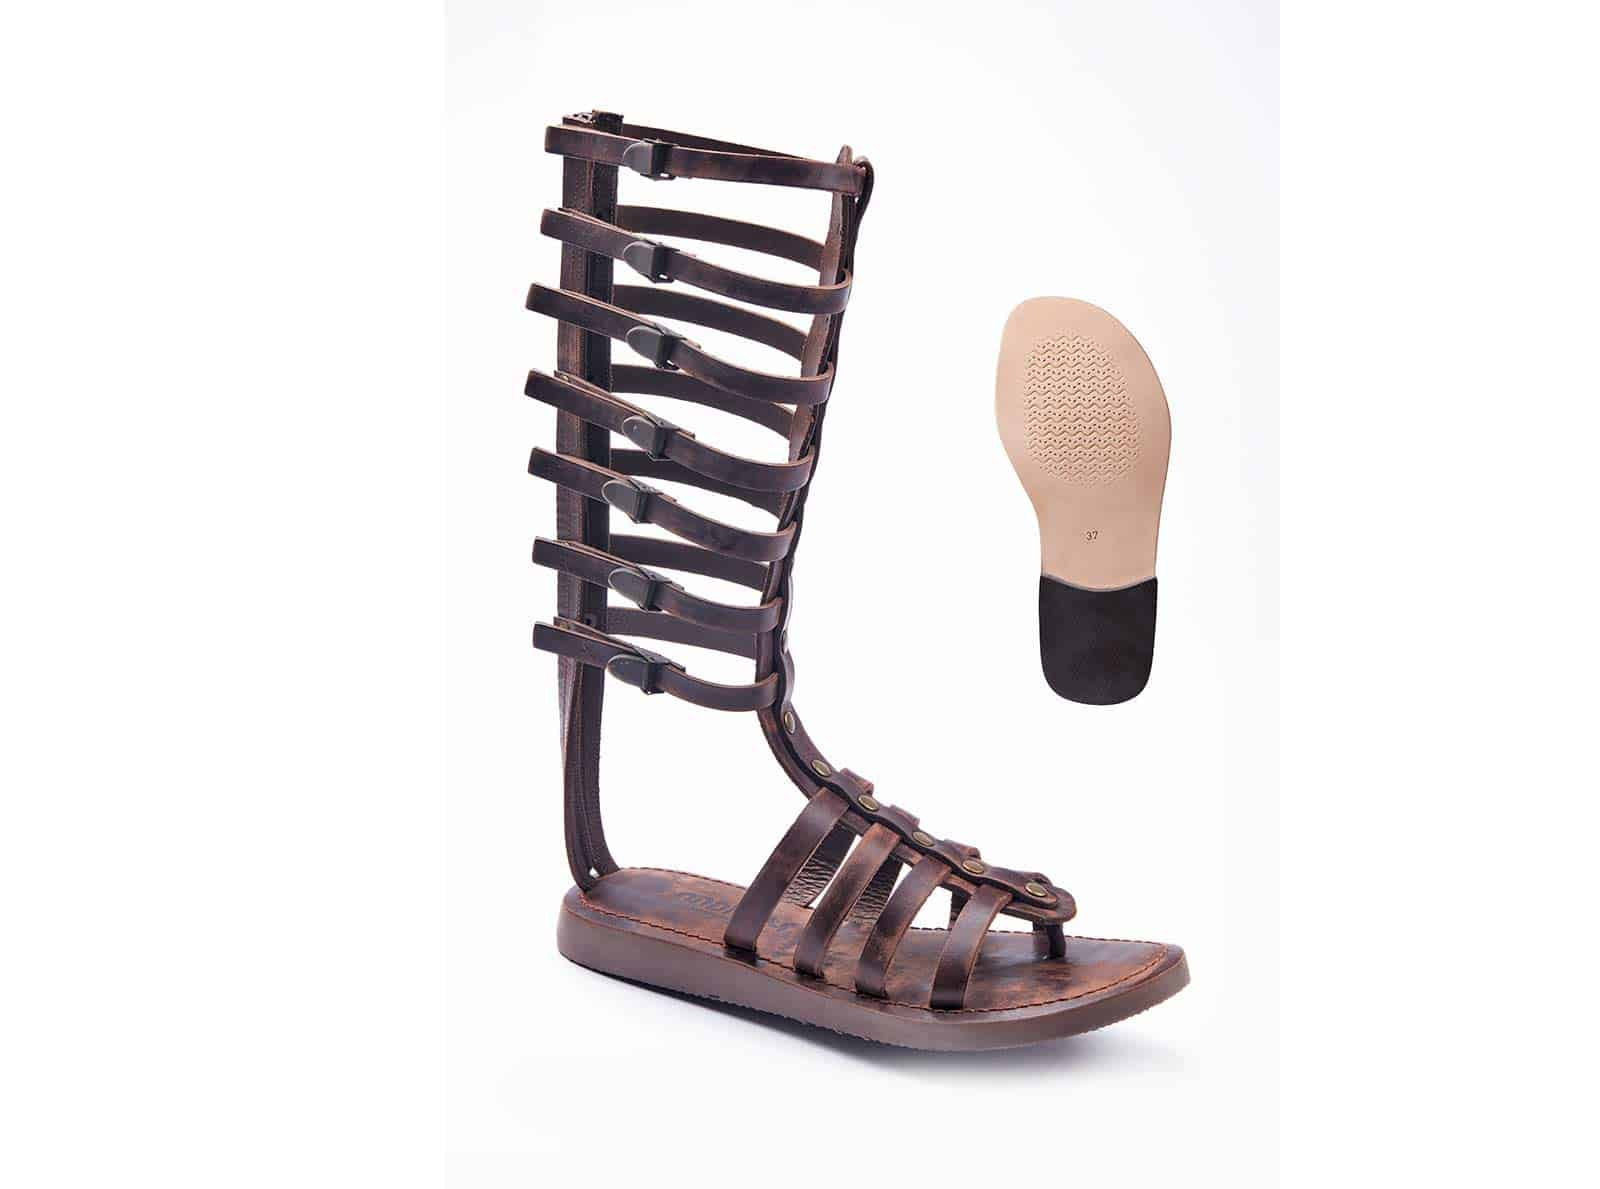 abb2406167a The gladiators drew attention to legs and are popular today. Because of the gladiator  sandals detailing works